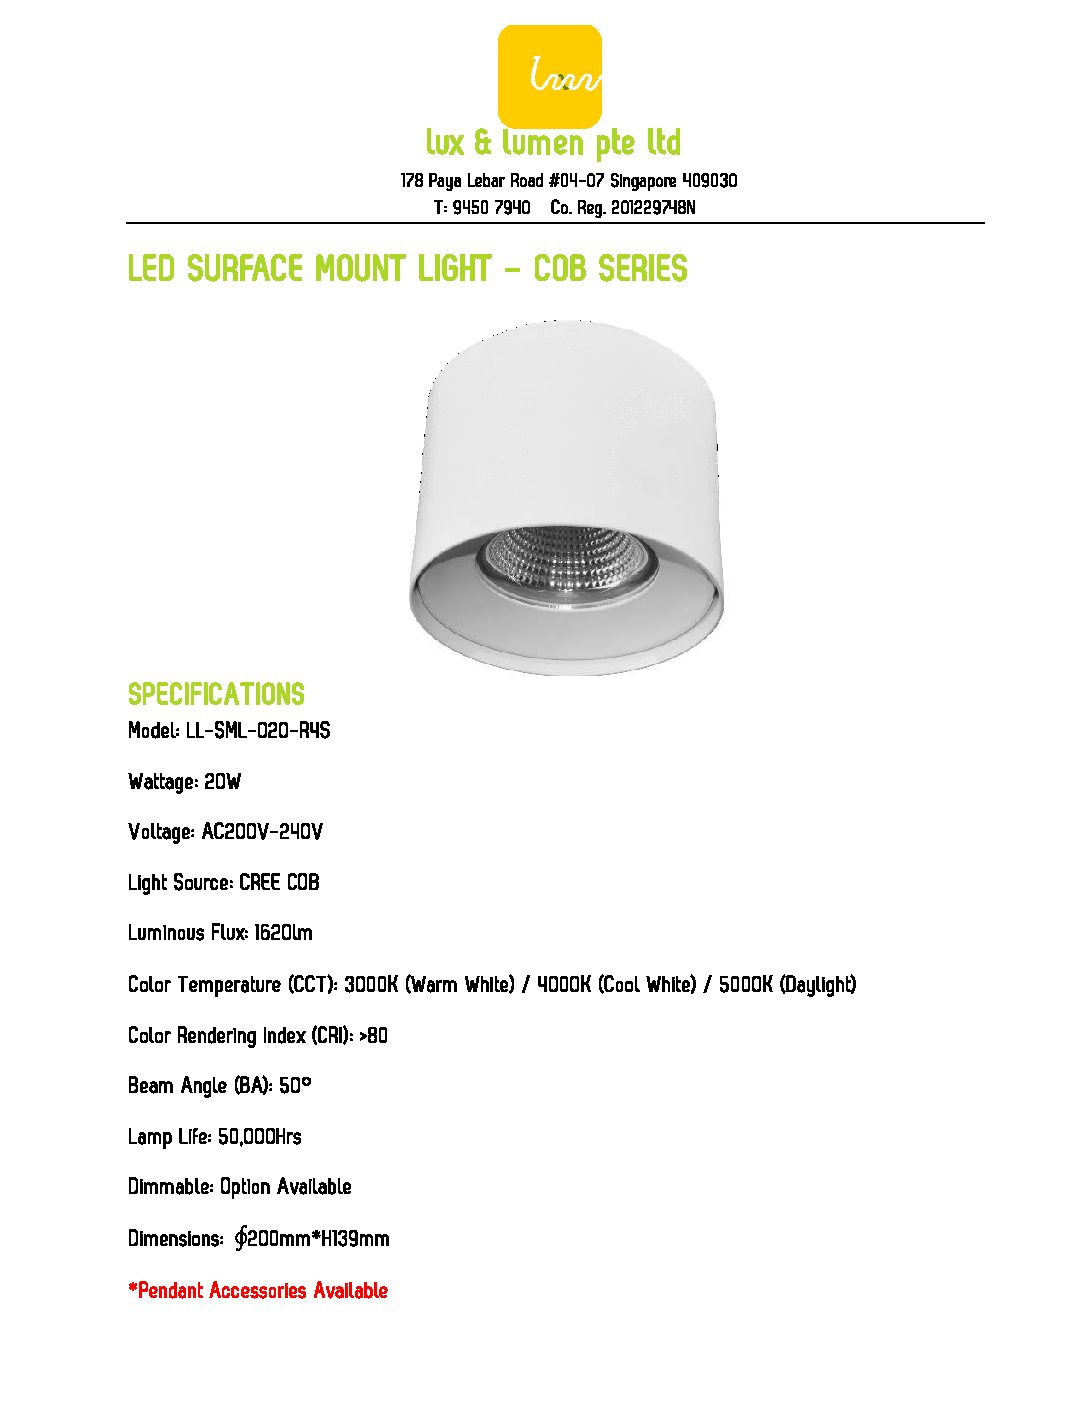 LED Surface Mount Light COB Series R020S